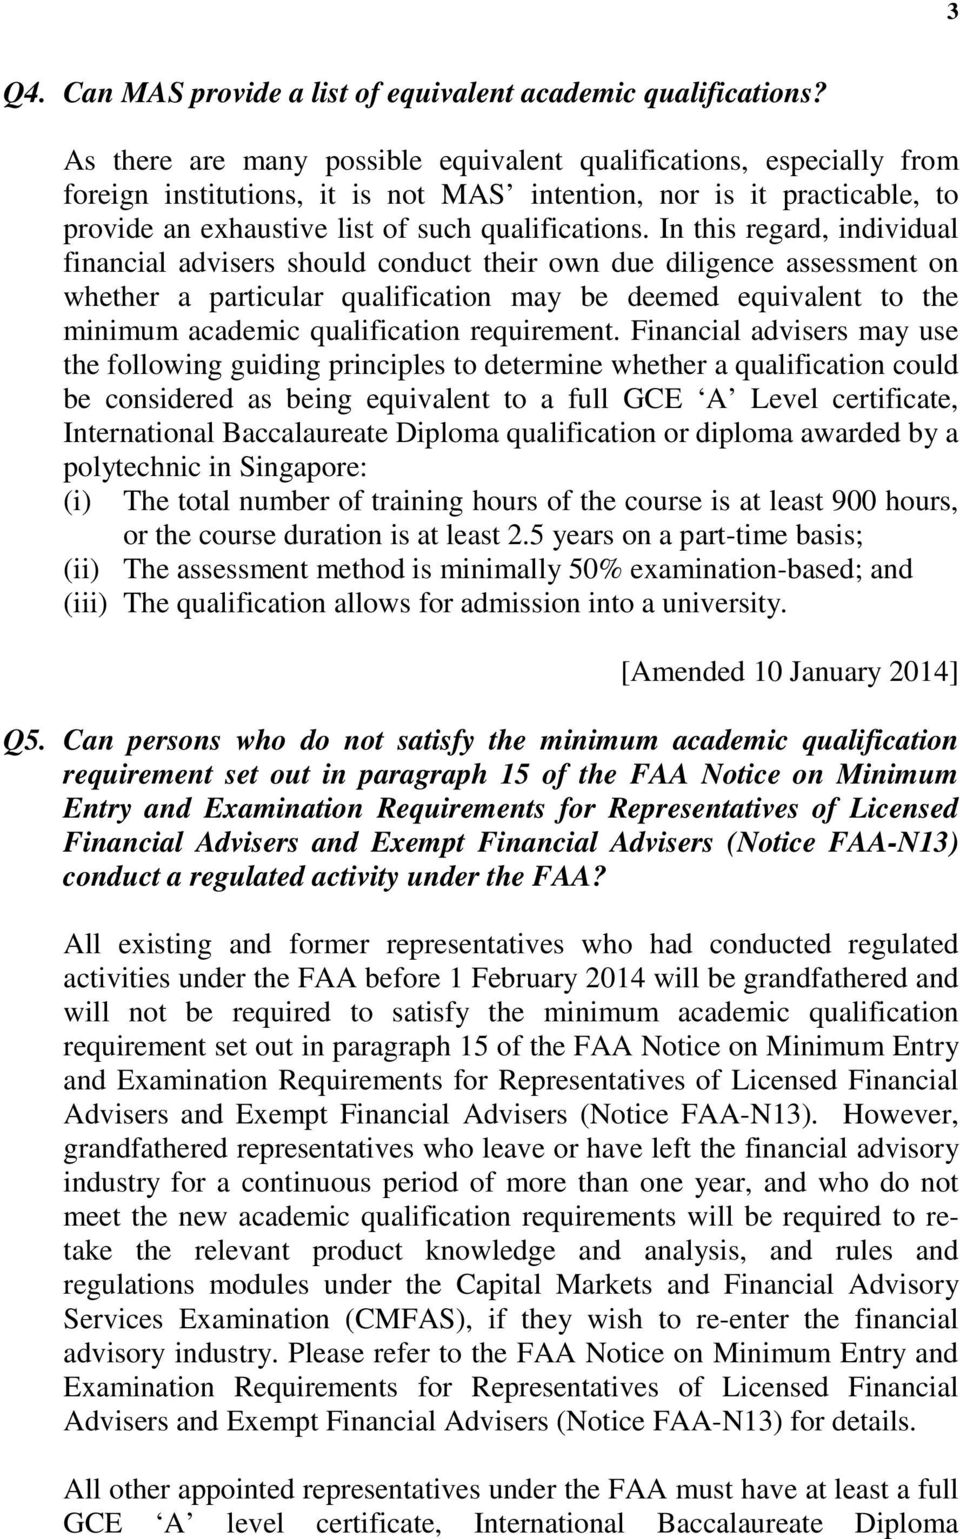 In this regard, individual financial advisers should conduct their own due diligence assessment on whether a particular qualification may be deemed equivalent to the minimum academic qualification